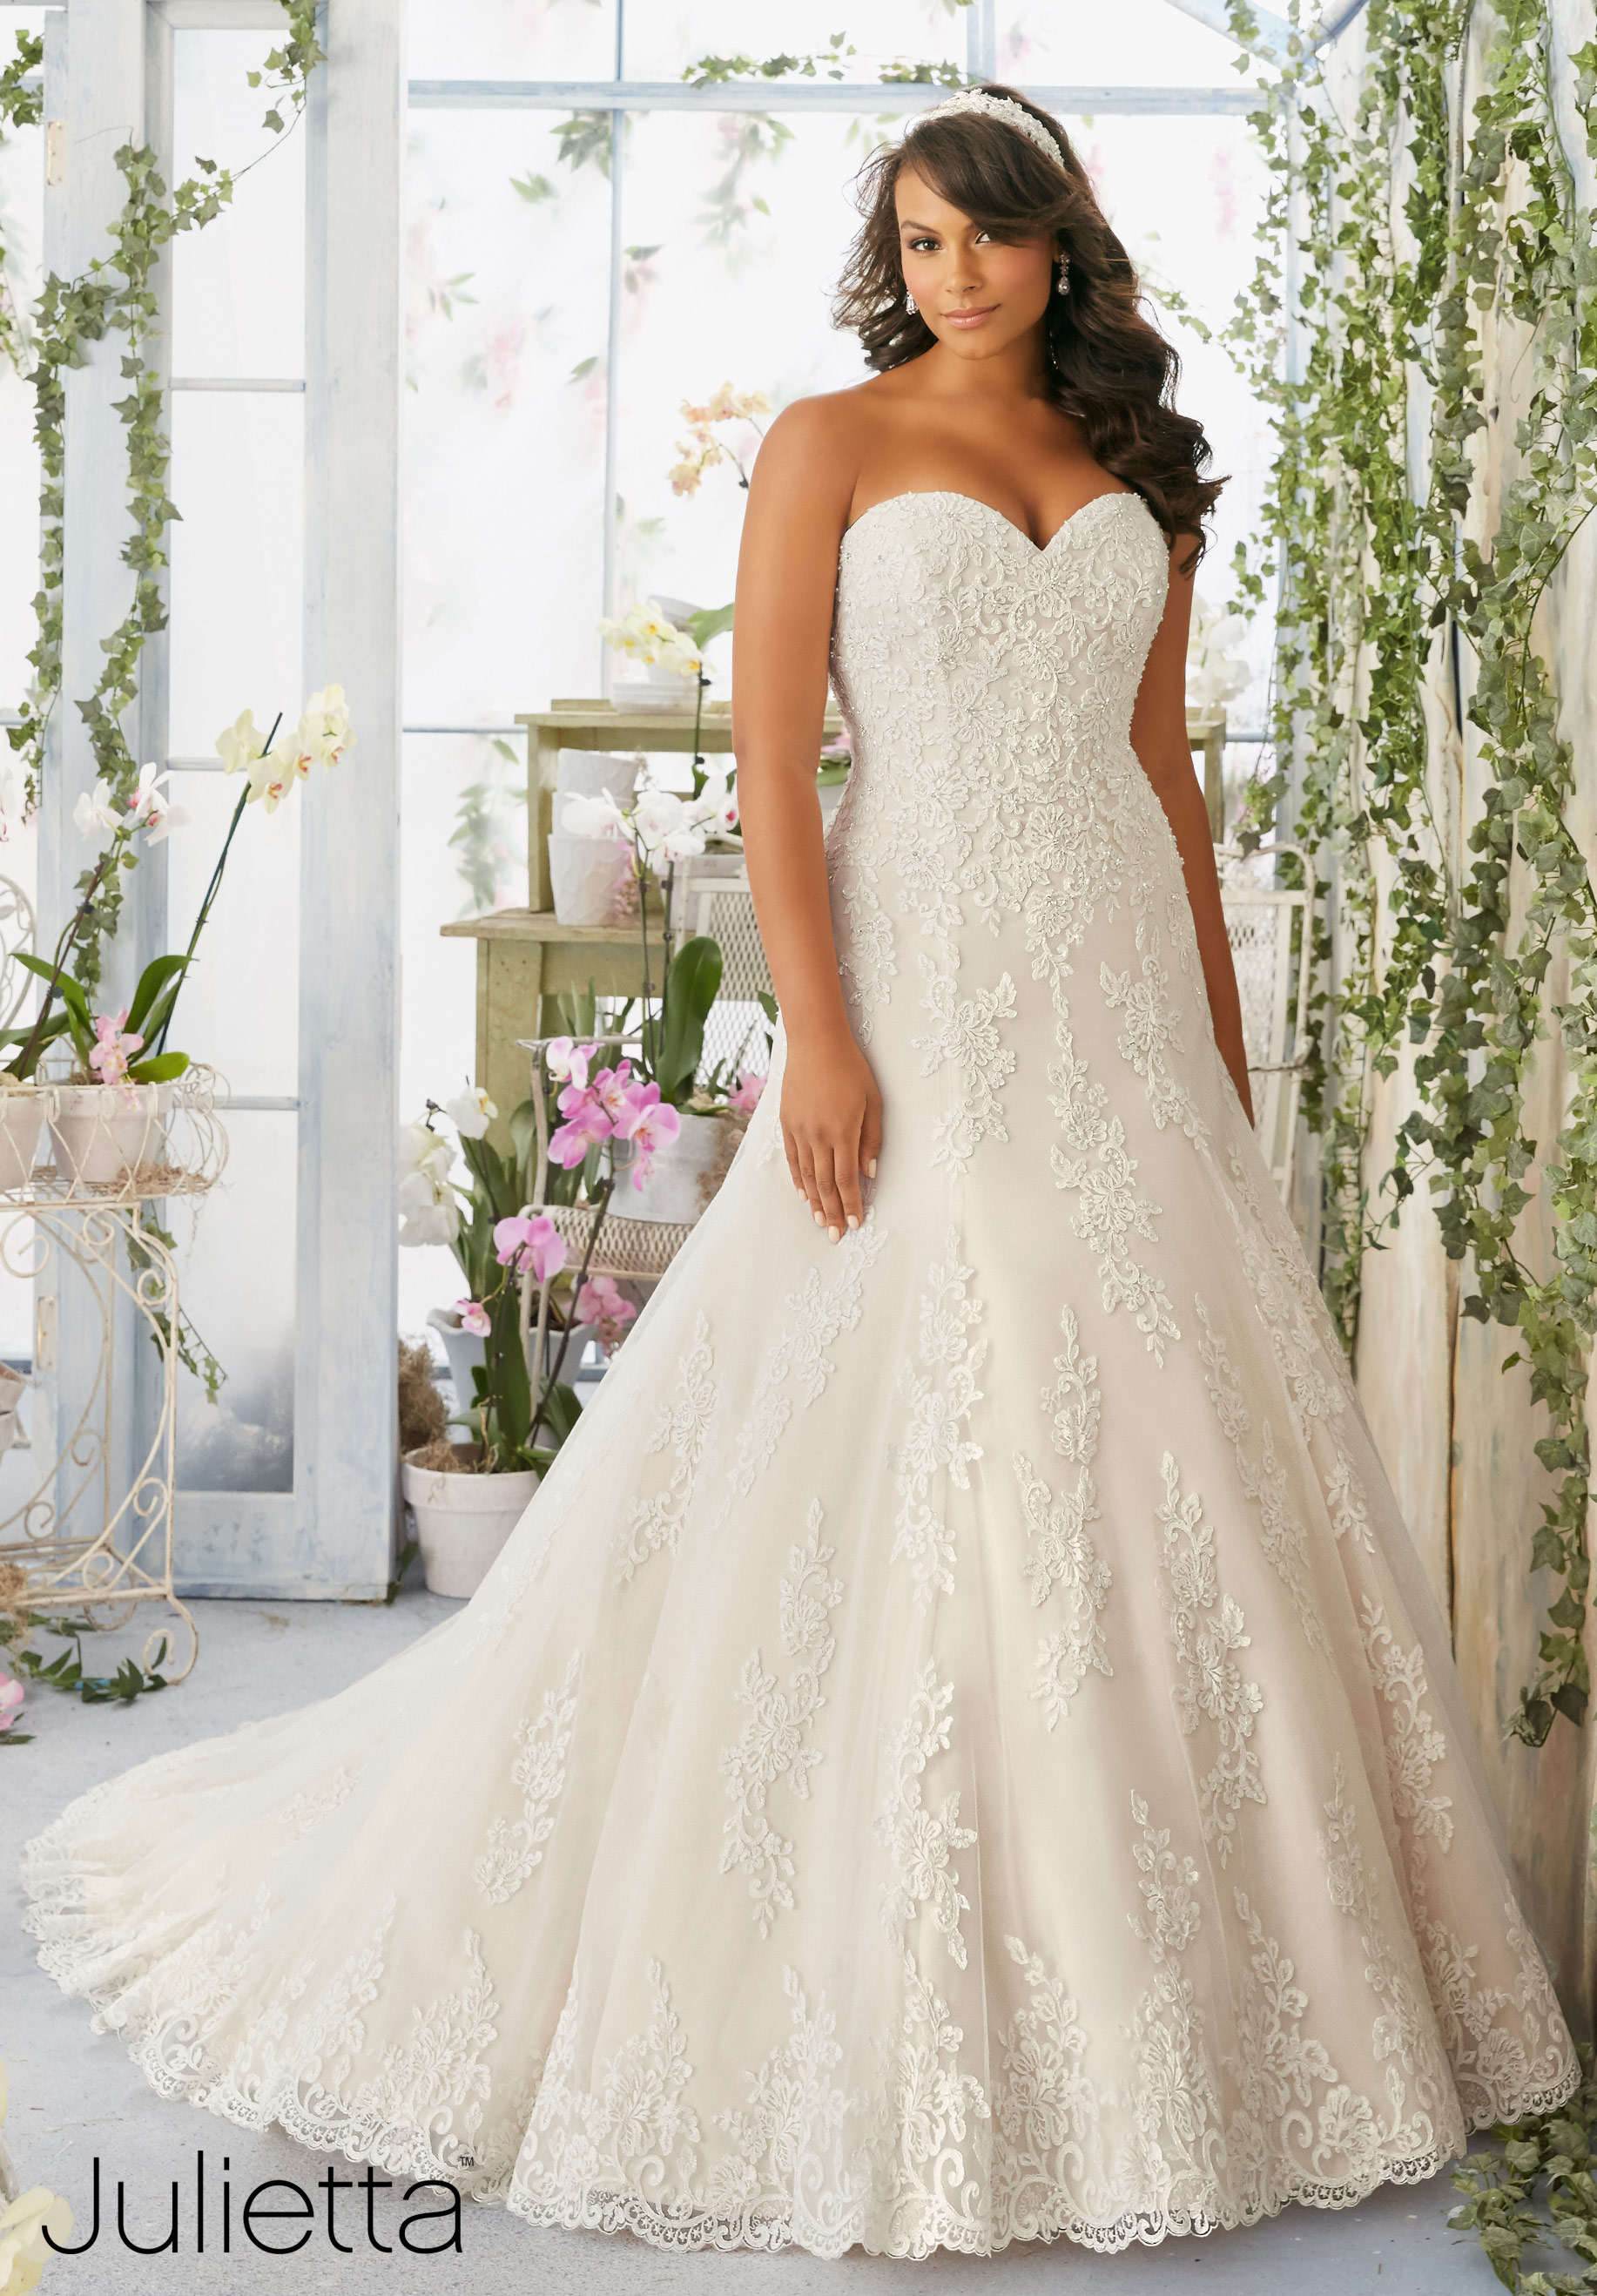 plus size wedding gowns mori lee julietta collection plus sized wedding dresses plus size bridal gown